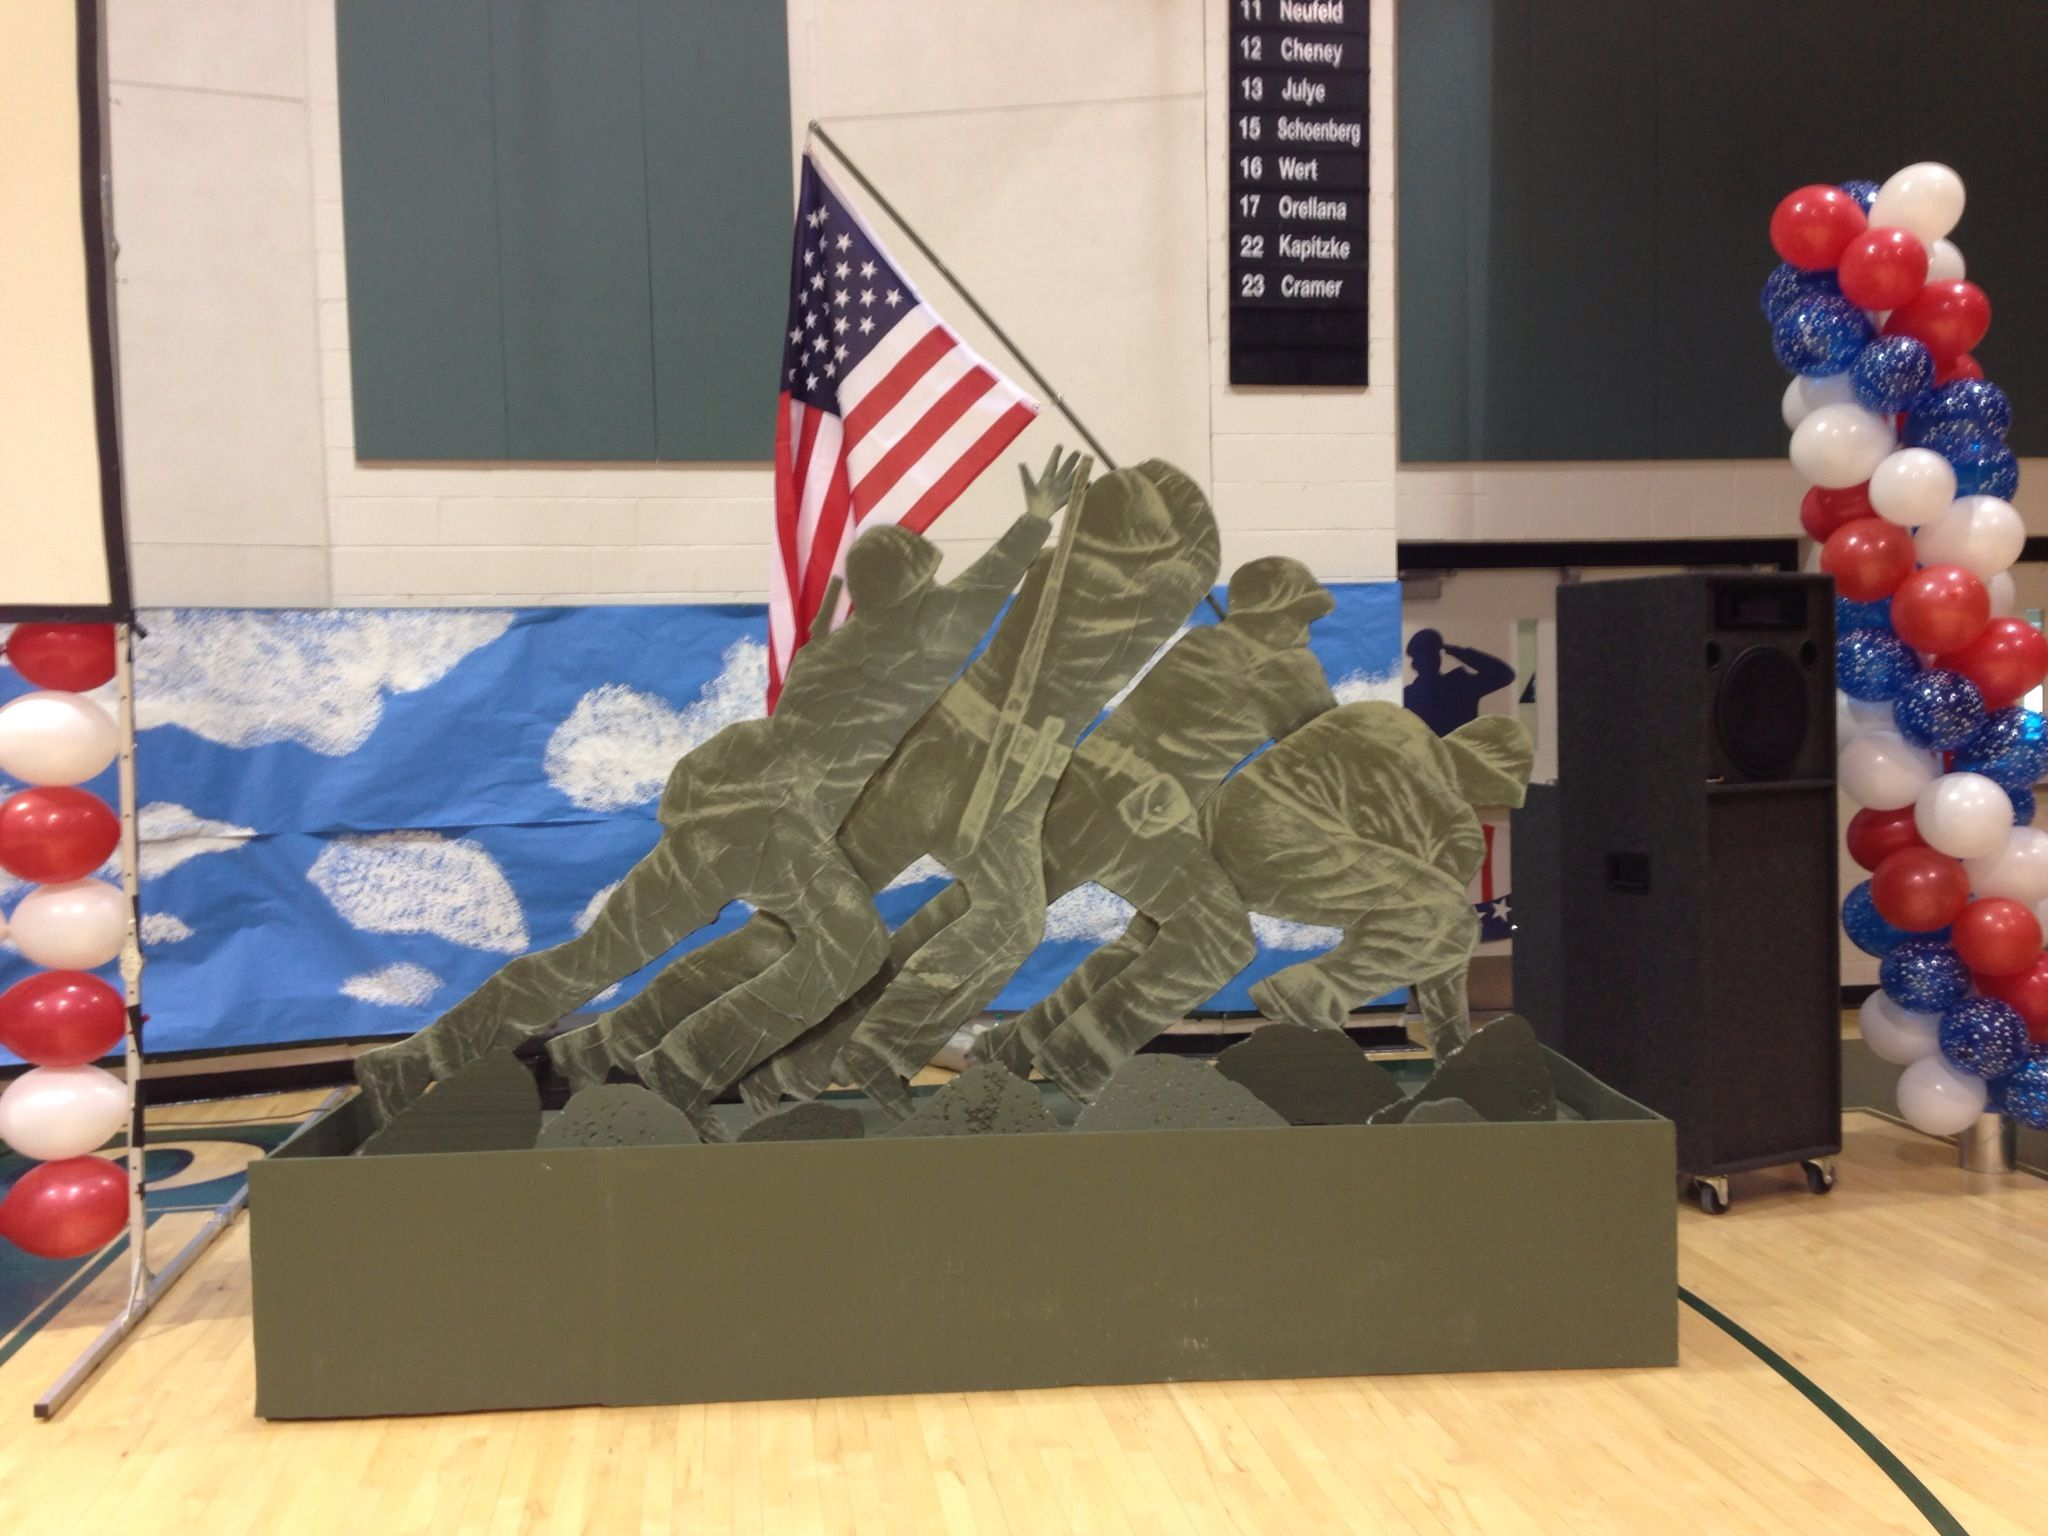 Veteran S Day Assembly Decorations Made With Foam Board And Paper Veteran S Day Veterans Day Classroom Crafts